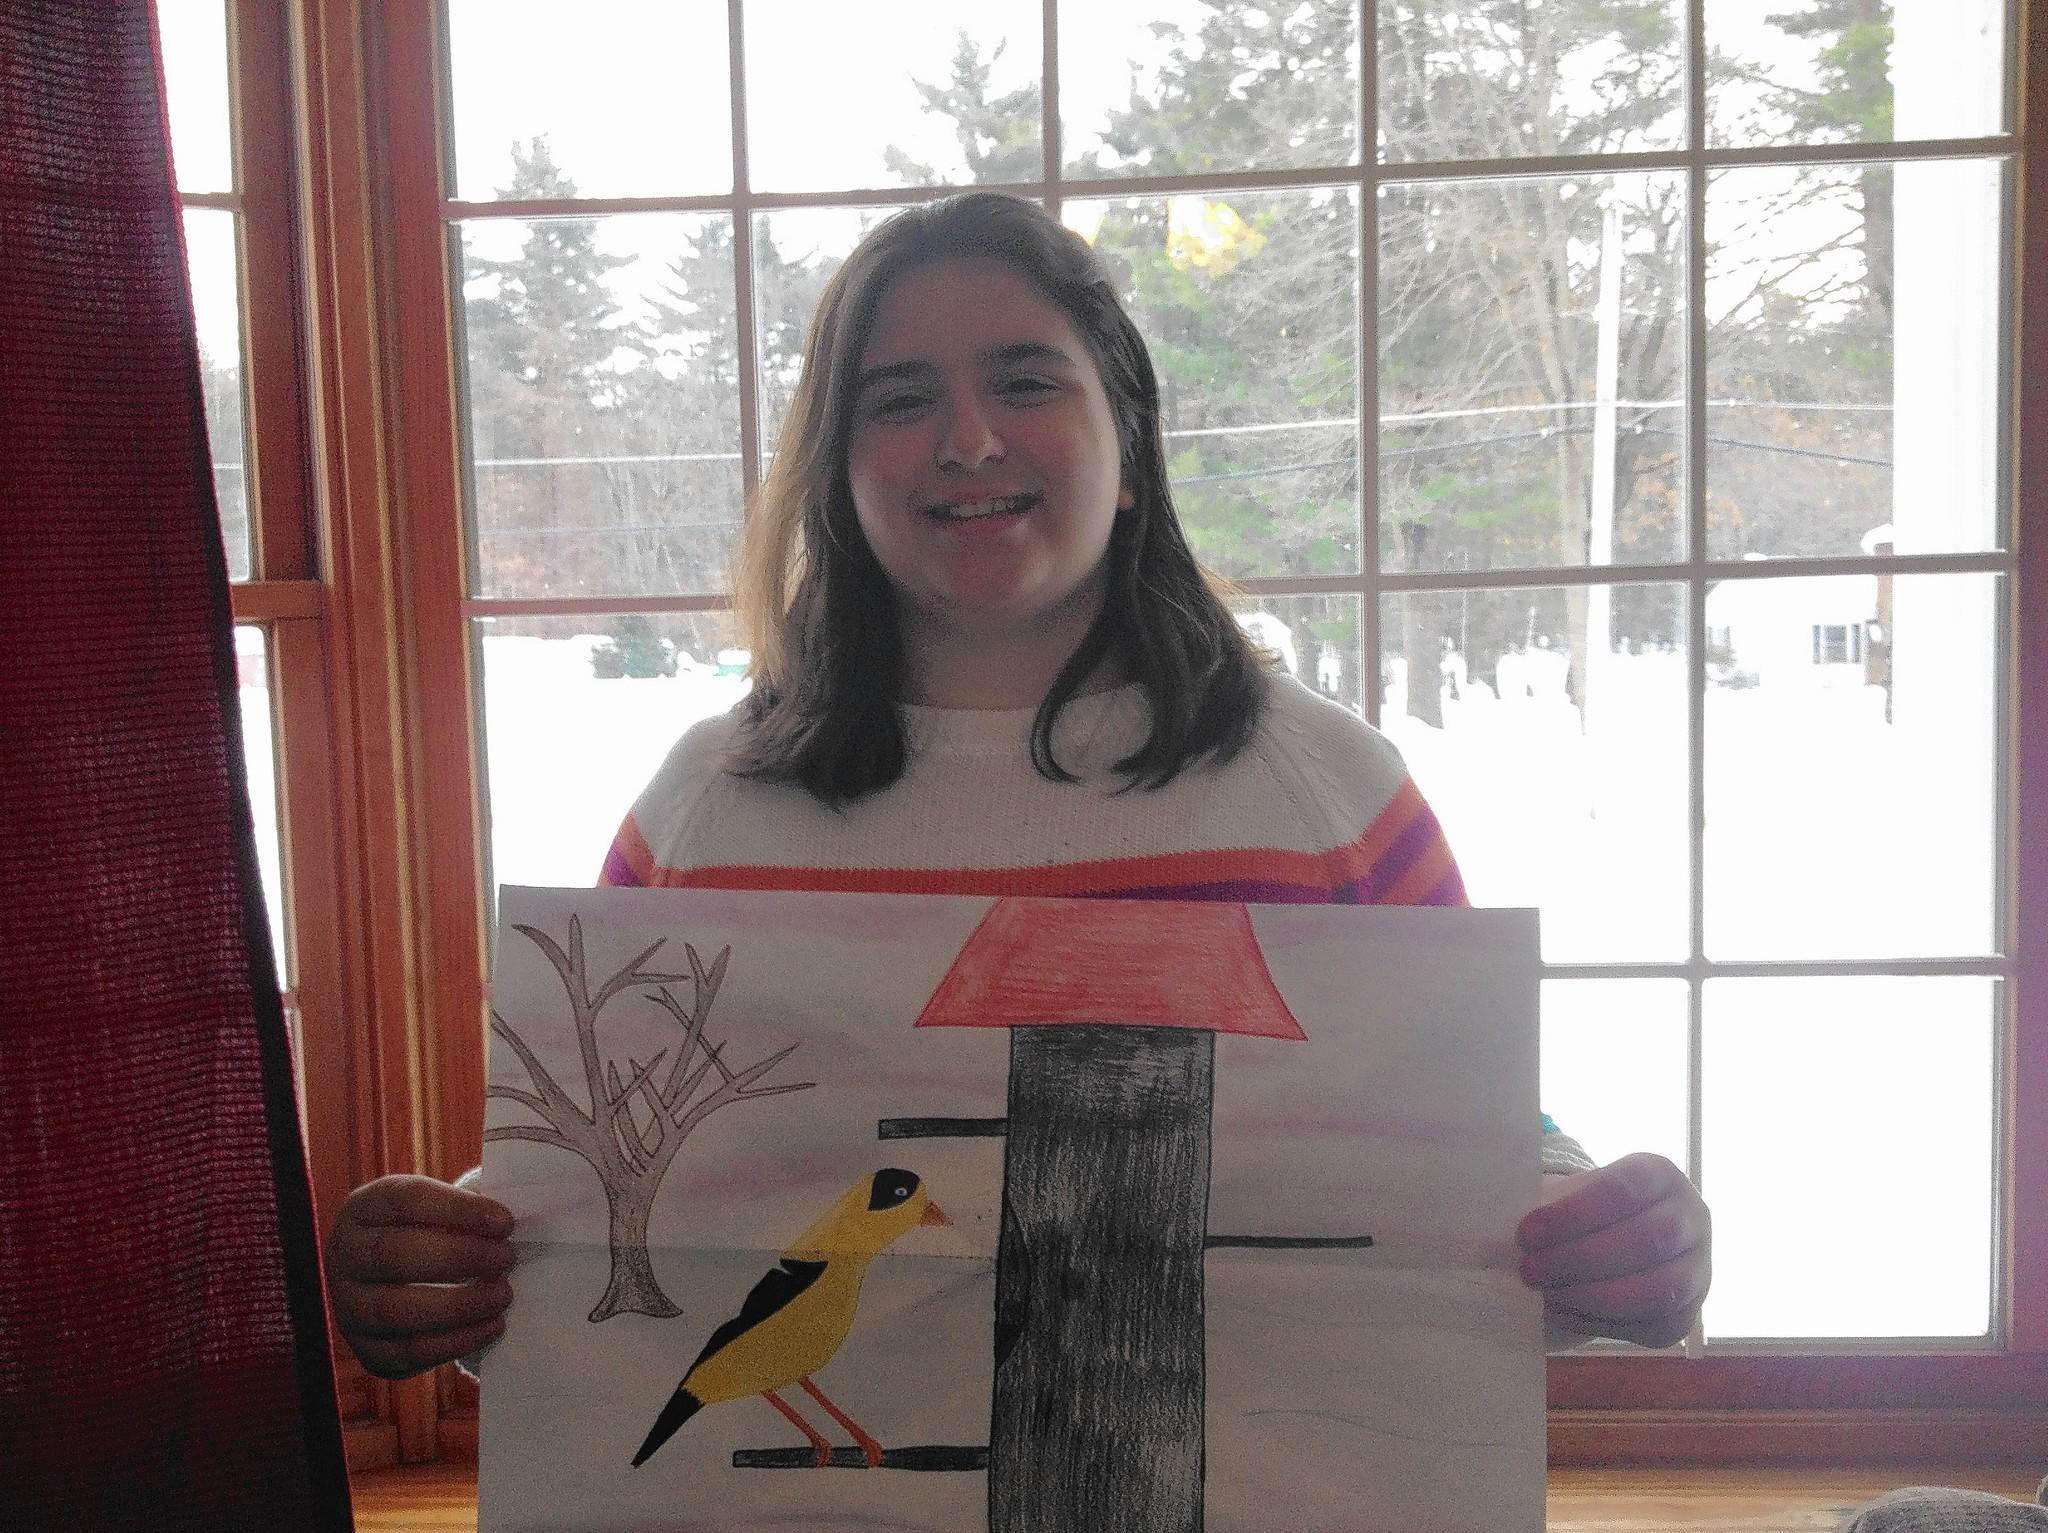 Christina Swider, an 11-year-old sixth grader at John F. Kennedy Middle School, holds her drawing of a goldfinch that won her an award in Cornell's Celebrate Urban Birds Fascinating Feathers art competition.